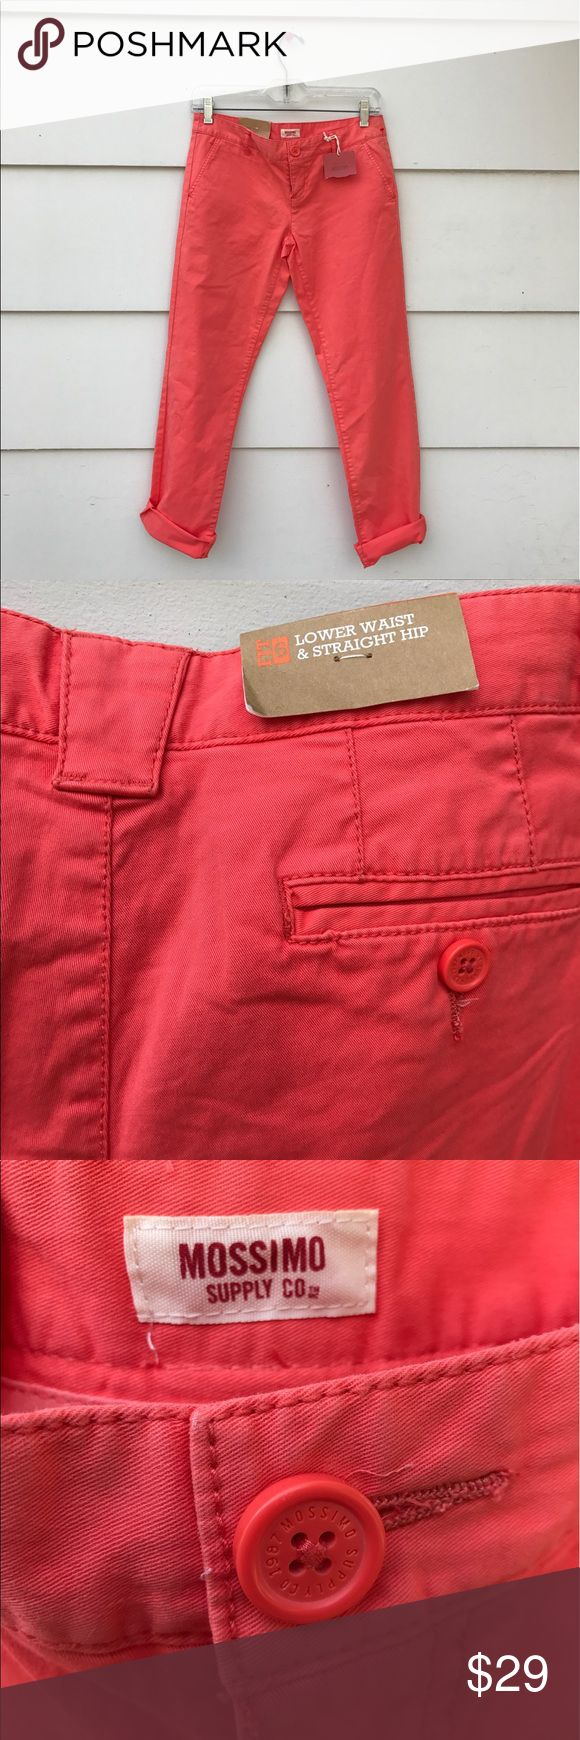 """Mossimo Supply Co Women's Orange Skinny Jeans Lovely Mossimo Supply Co women's orange skinny jeans lower waist straight hip Size 5 New with Tag. Materials. 98% cotton 2% spandex. Measurements. waist 28"""" hip 30"""" inseam 30 overall length 37"""" Mossimo Supply Co Jeans Skinny"""